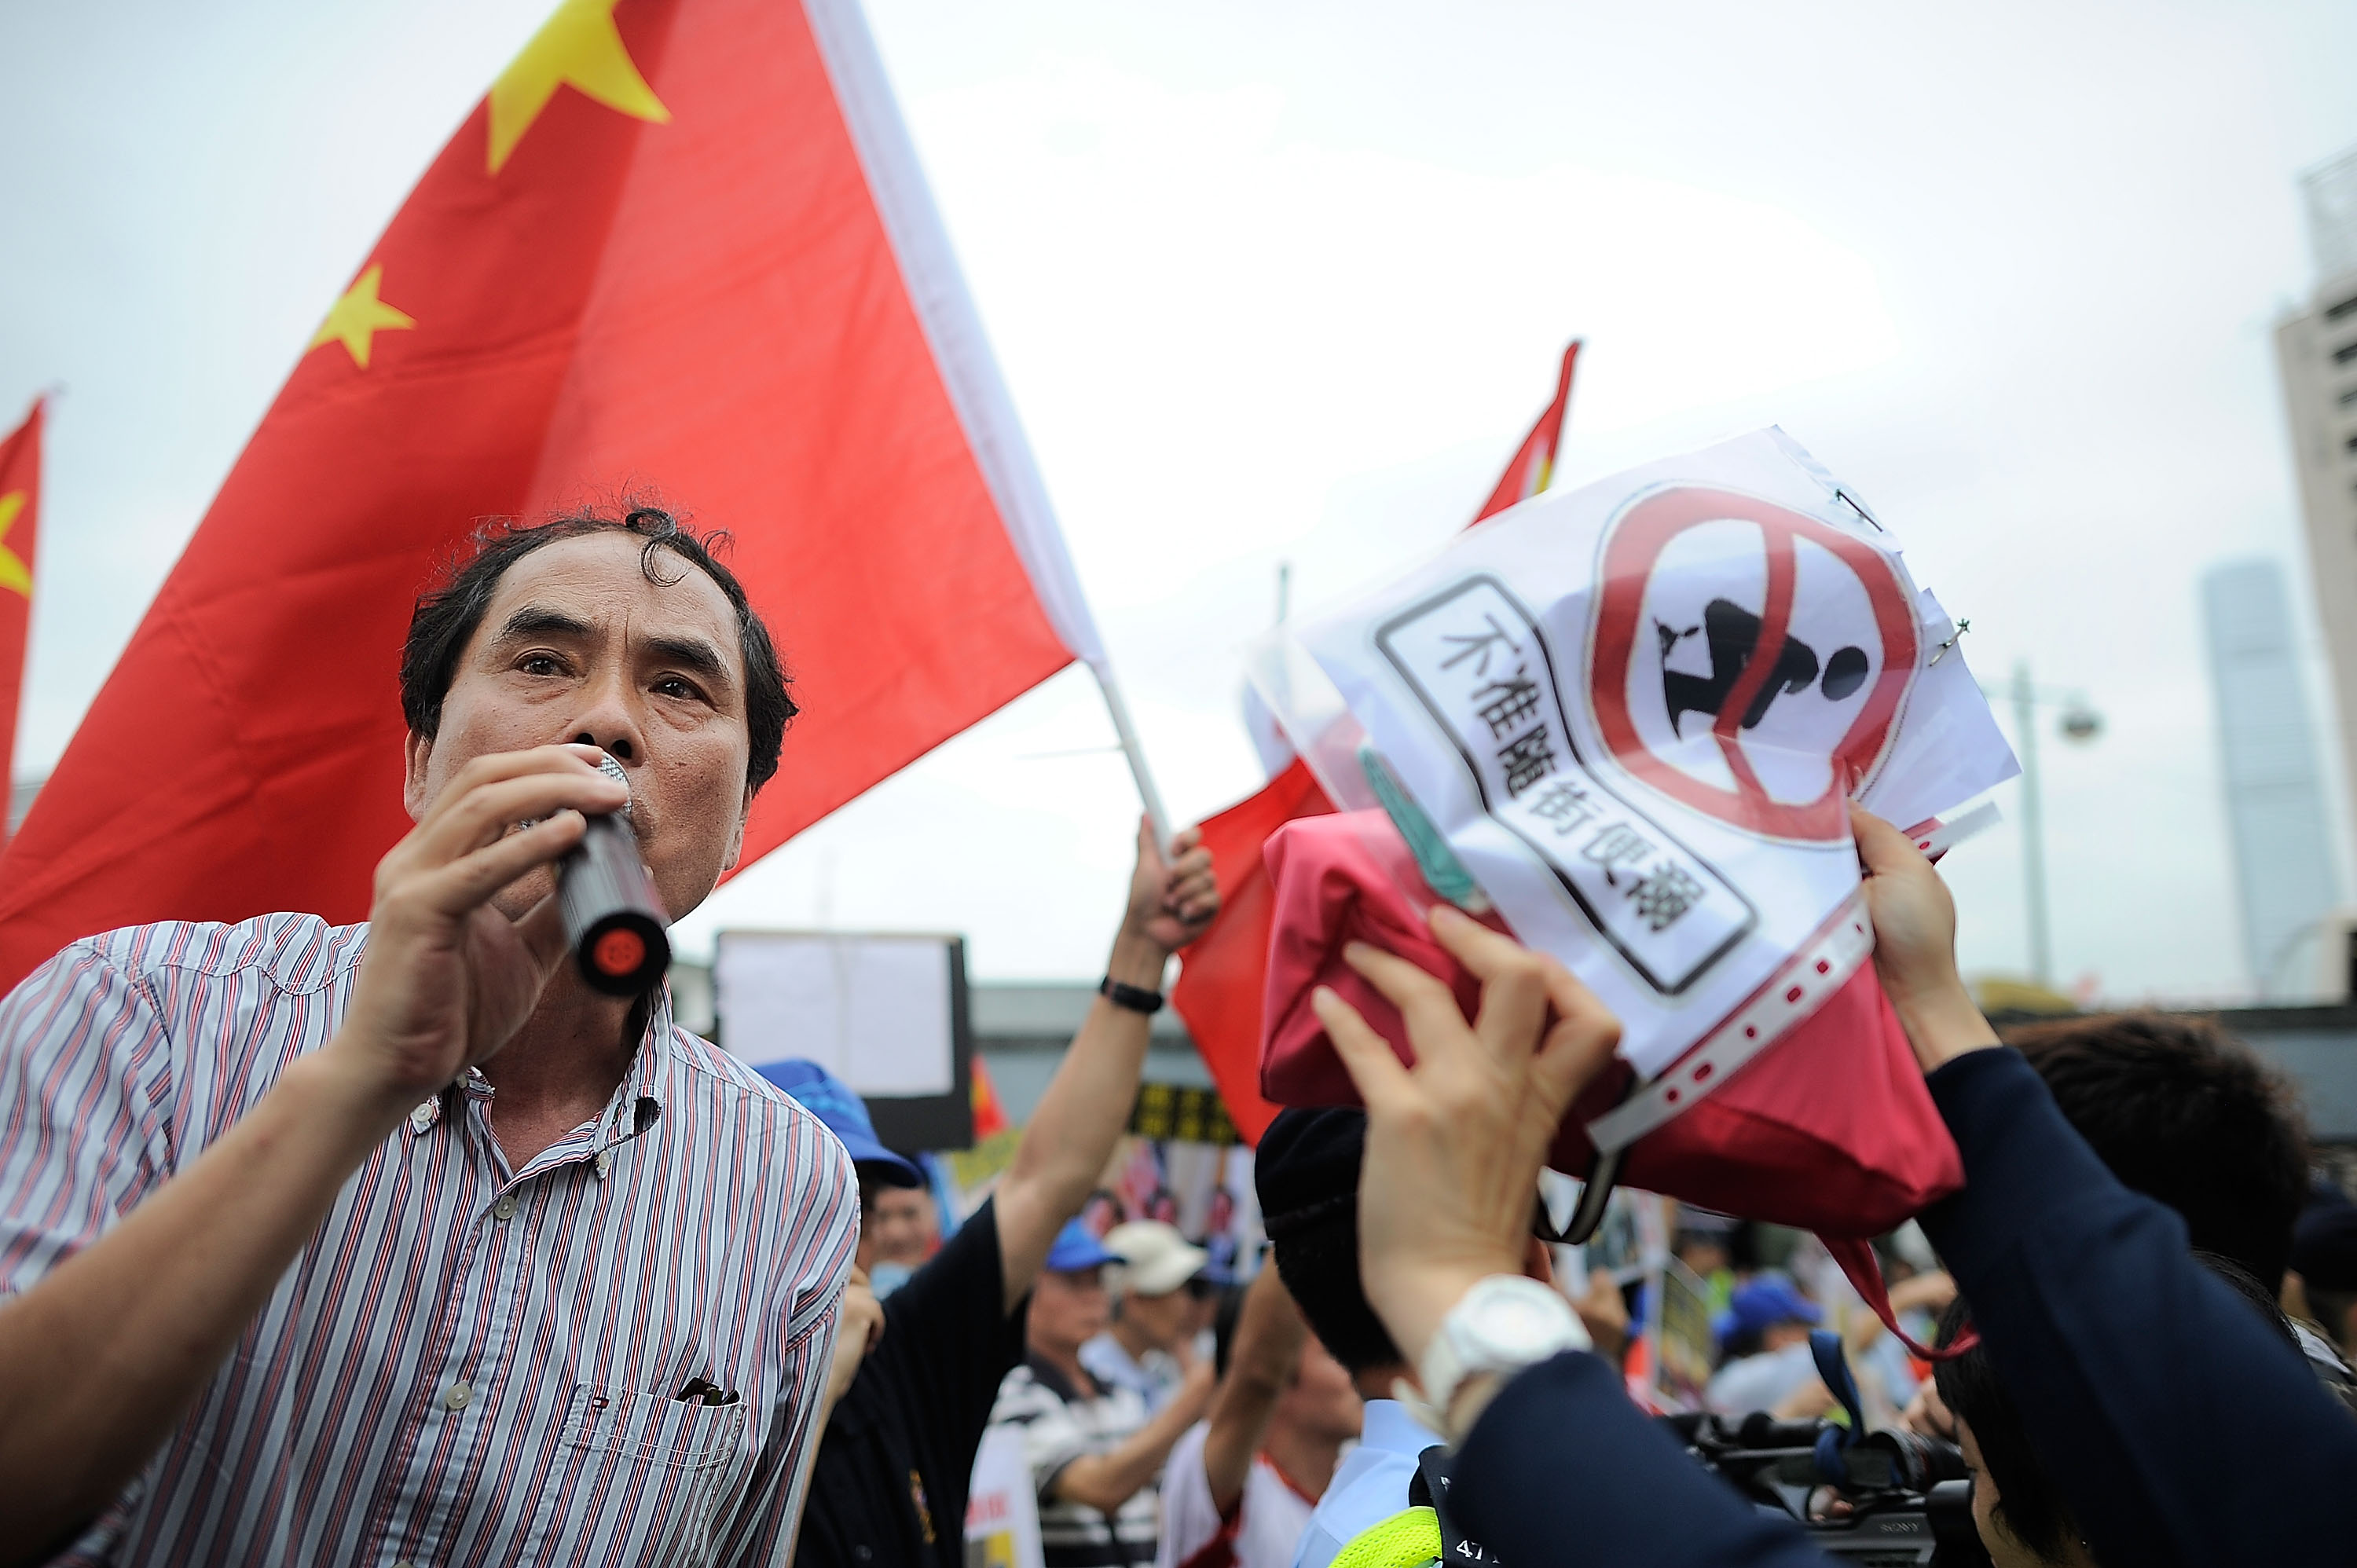 Hong Kong police officer who shot protester receives death